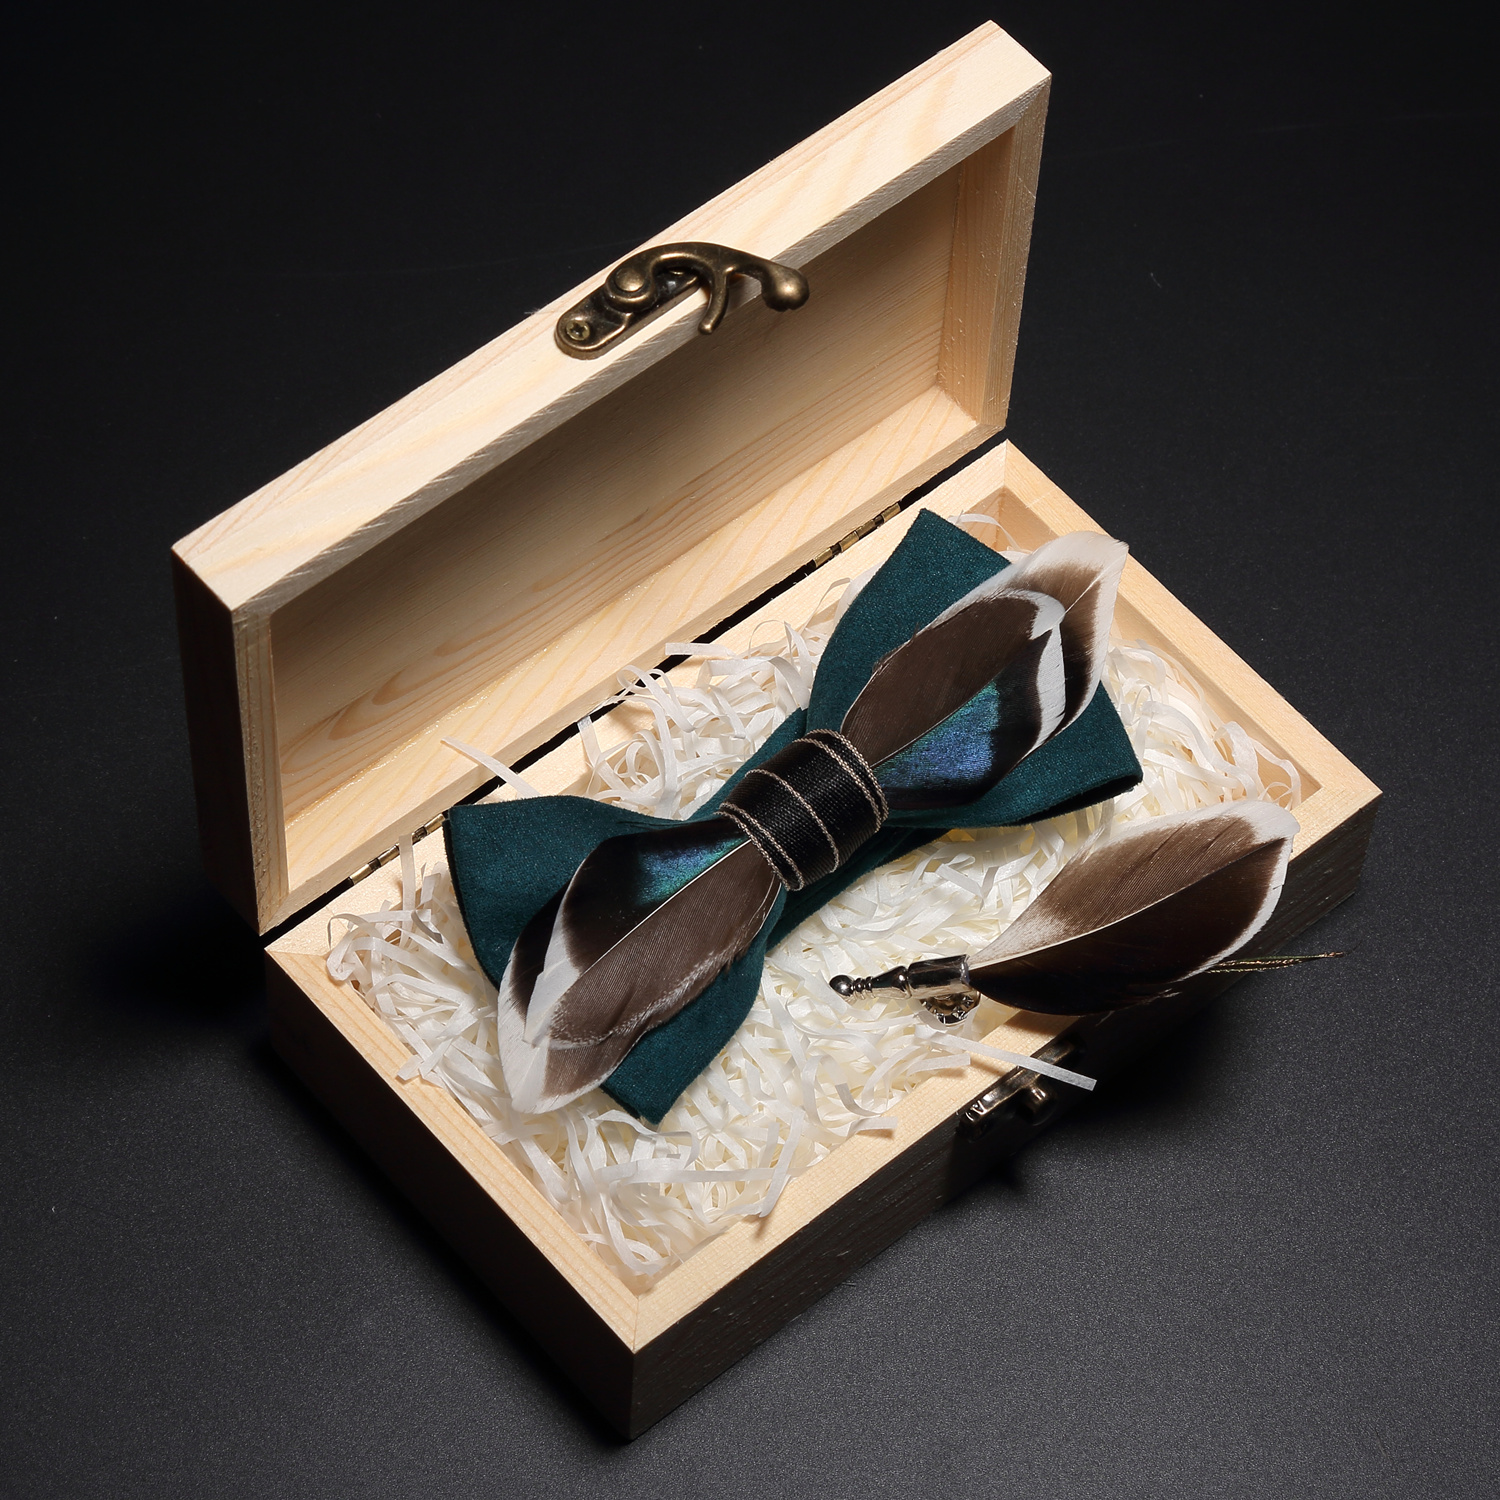 GUSLESON Quality Handmade Feather Bow Tie And Brooch Set For Men Accessories Men's Luxury Bowtie Set With Box For Wedding Gift